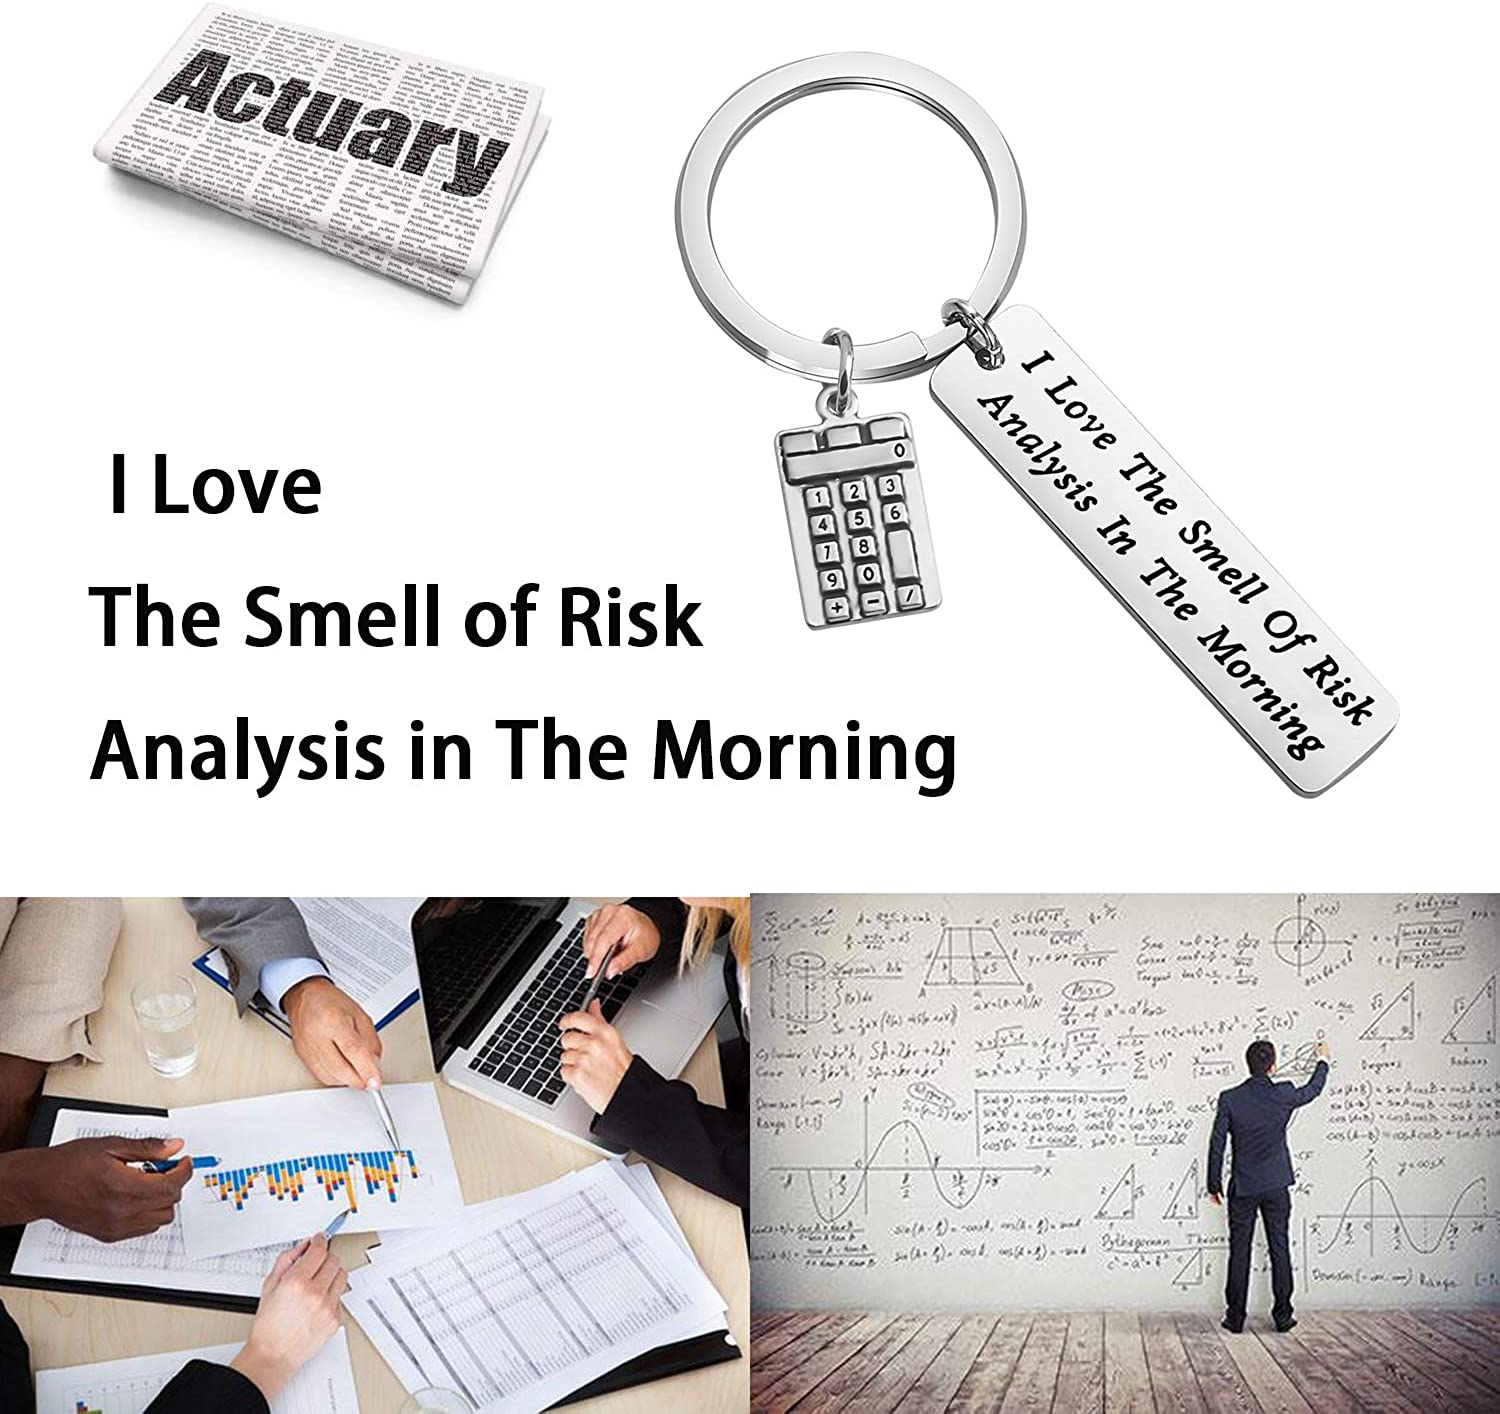 MAOFAED Actuary Gift Accountant/Gift Statistician Gift Consultants Gift Insurance Agent Gift I Love The Smell of Risk Analysis in The Morning